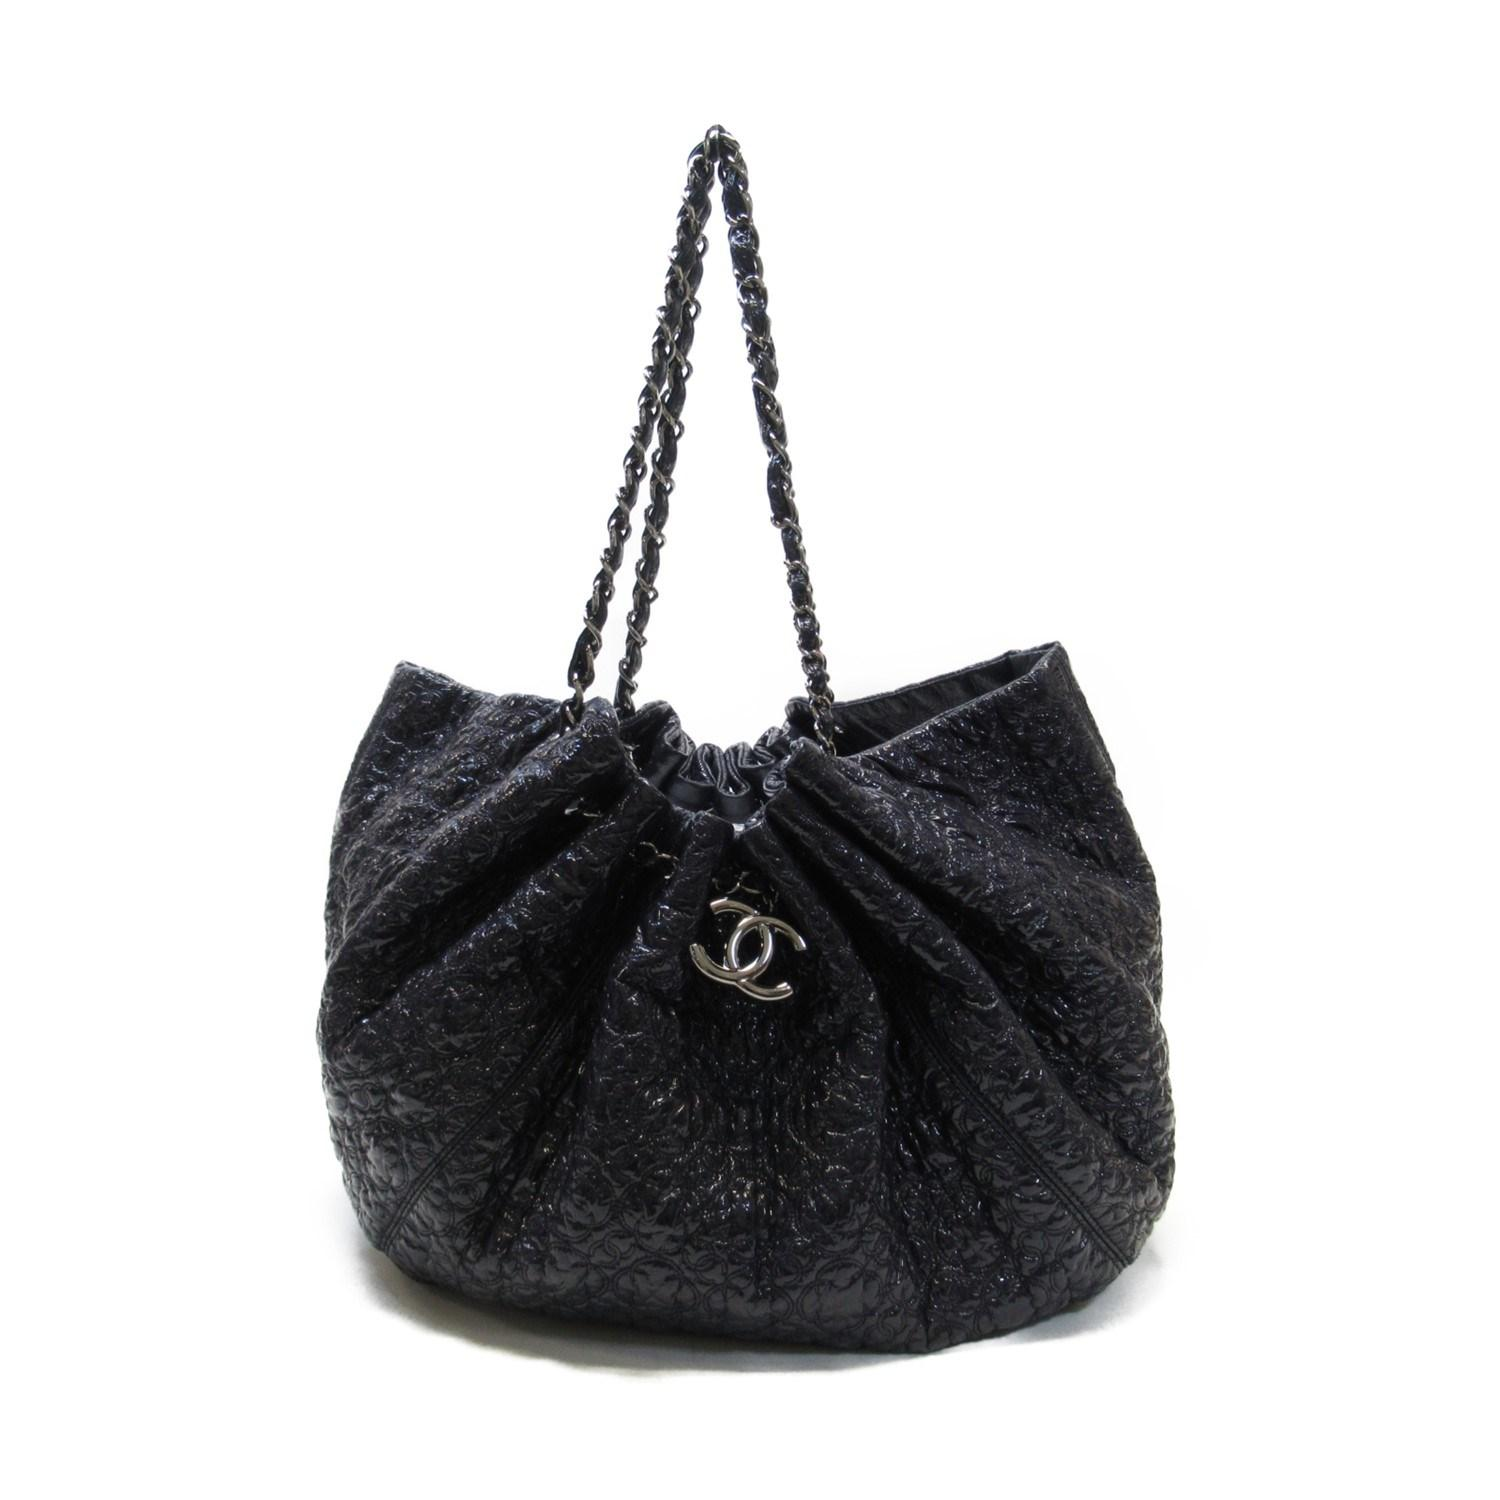 cd97cefb8e78 Chanel. Women's Auth Large Shoulder Tote Bag Black Patent Leather Used  Vintage